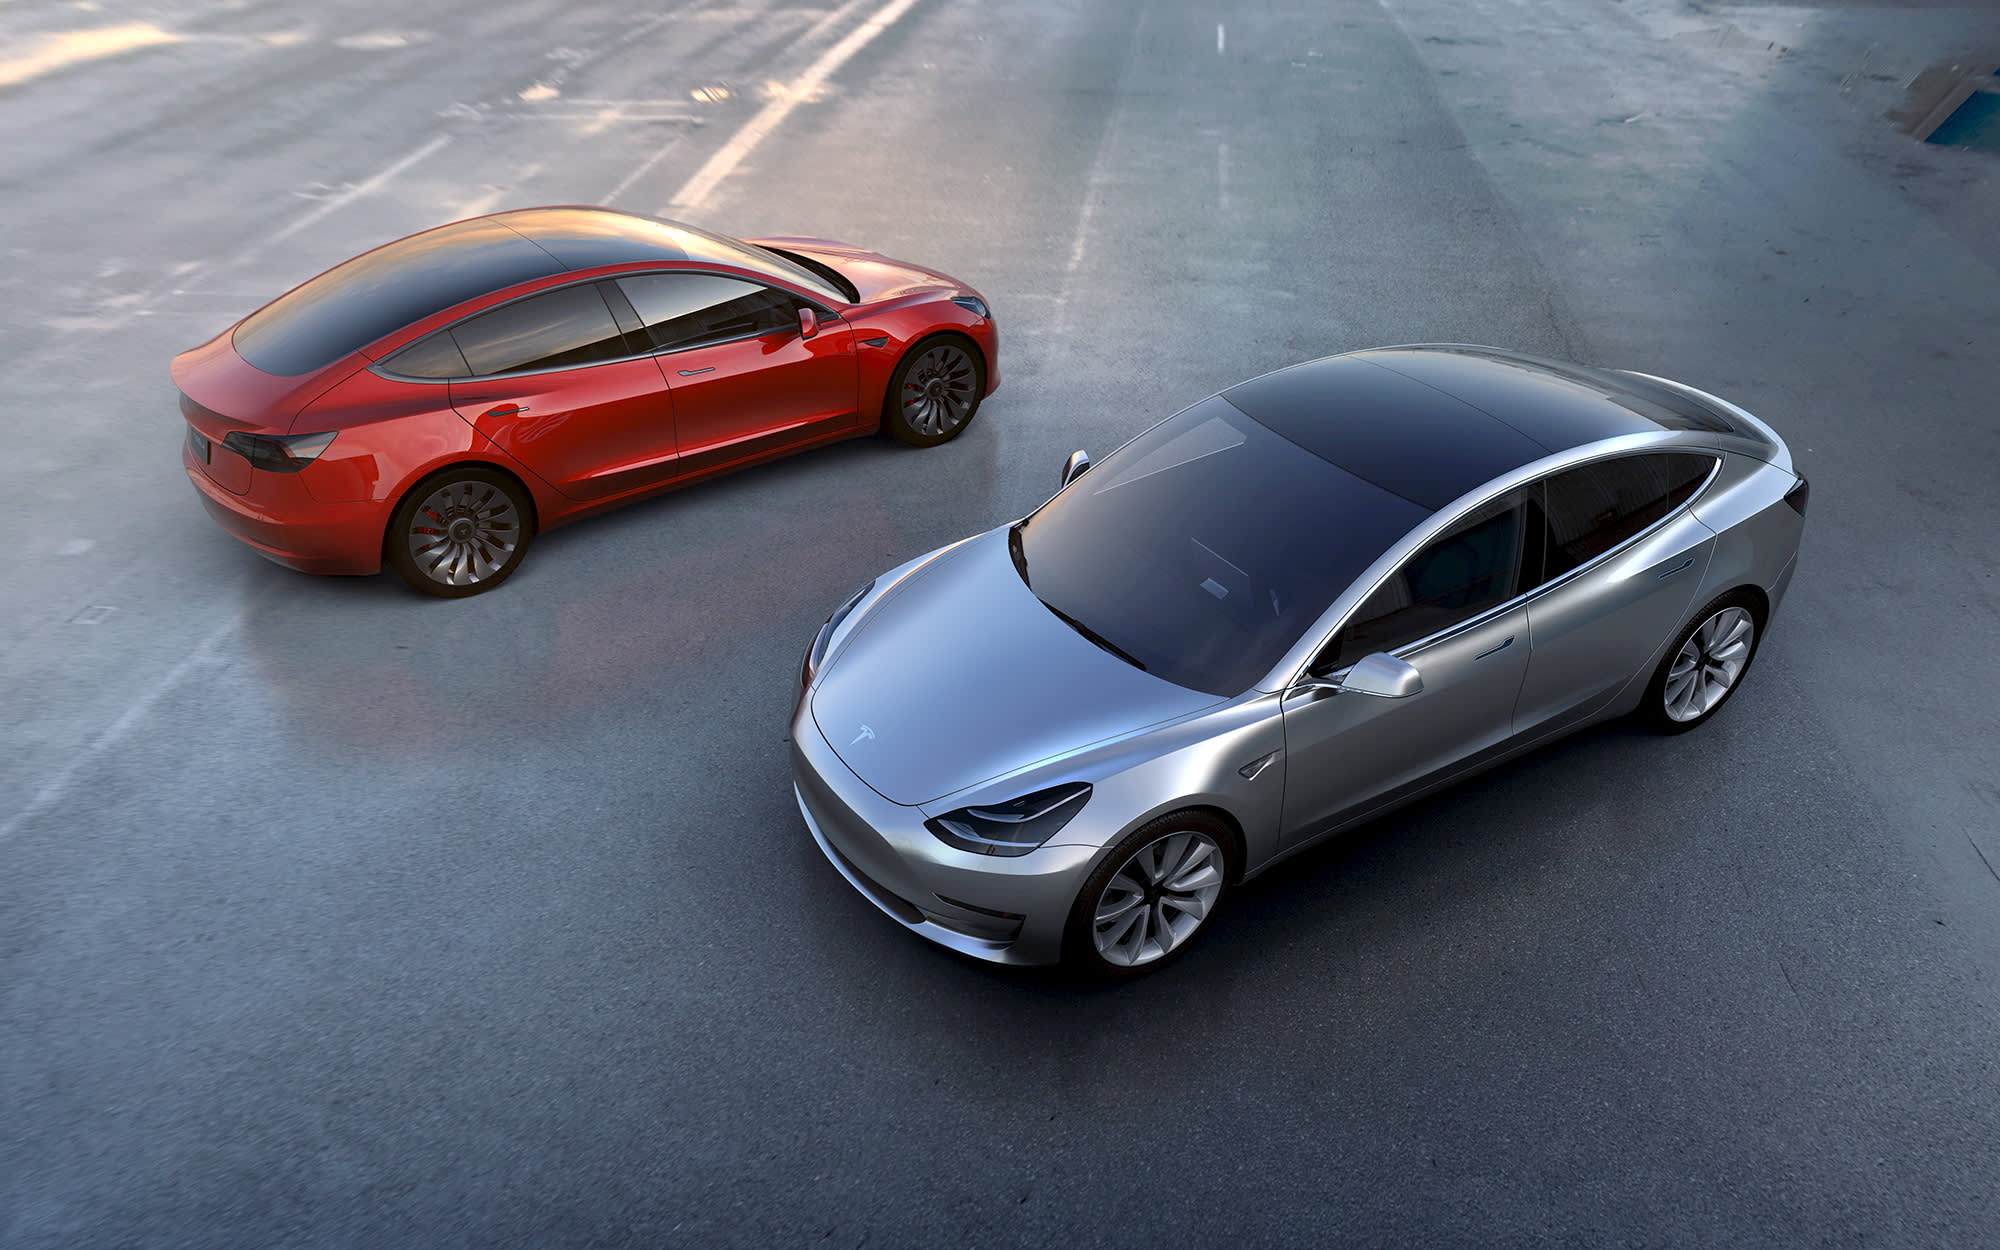 Photo of Car hire start-up Virtuo adds Teslas to fleet in electrification push